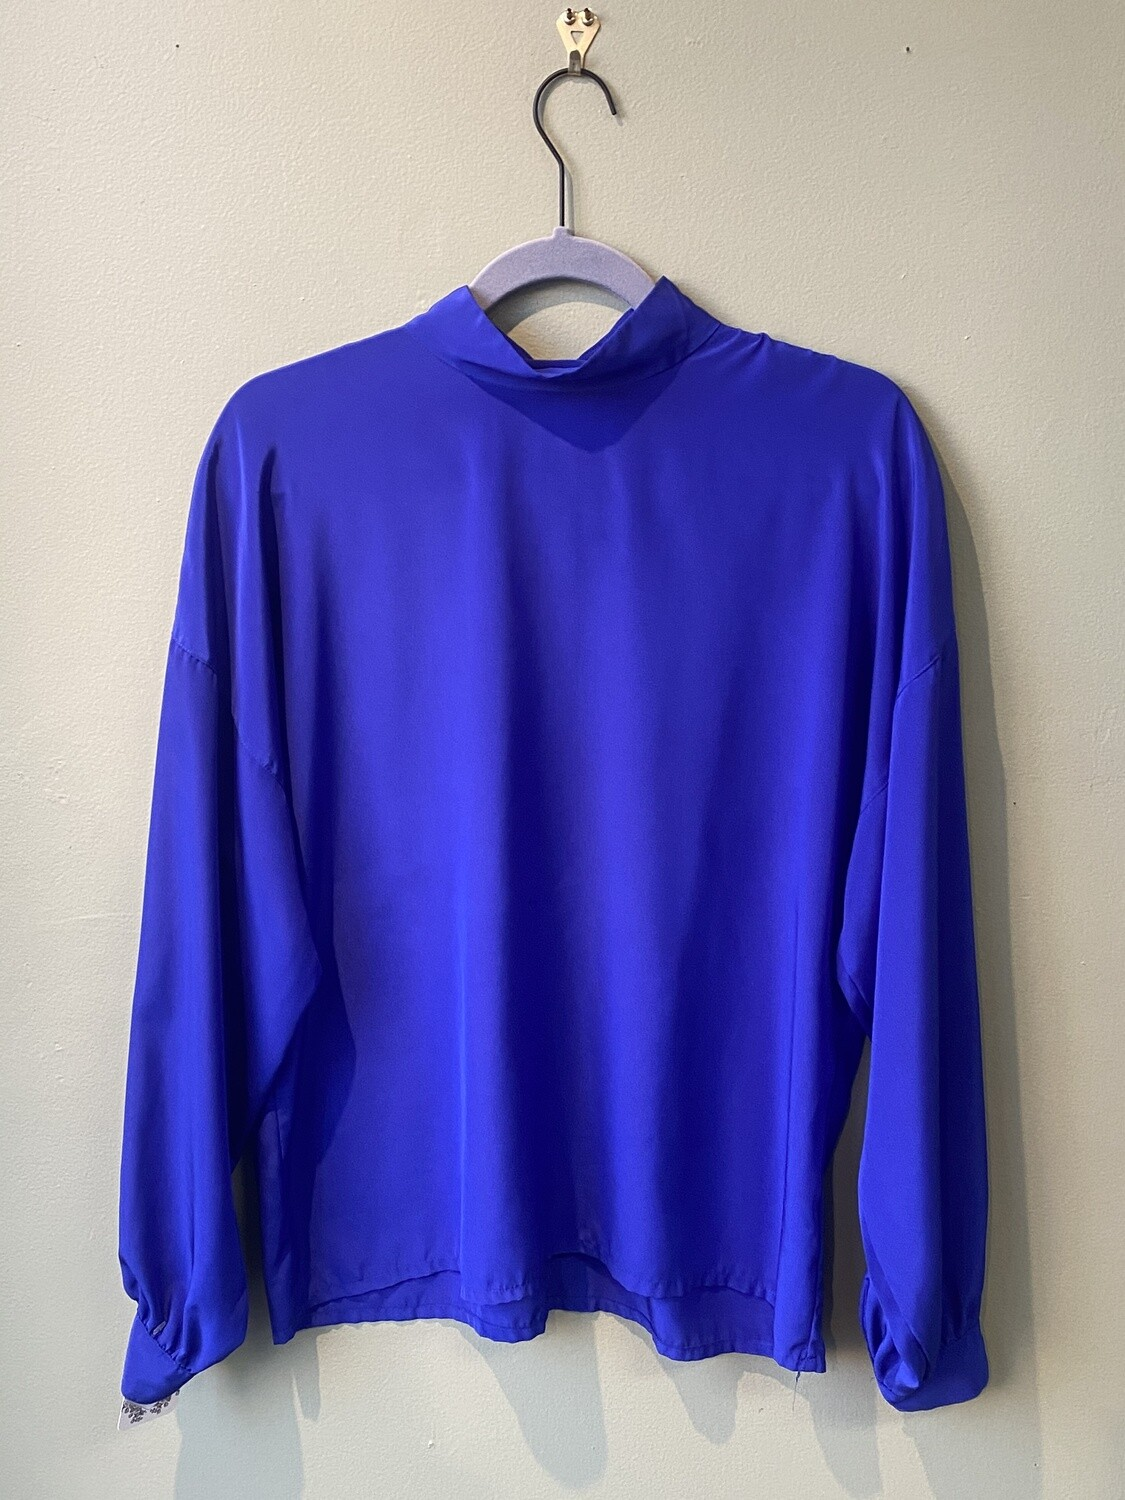 Vintage Alexandria Shirt, Size12, As Is